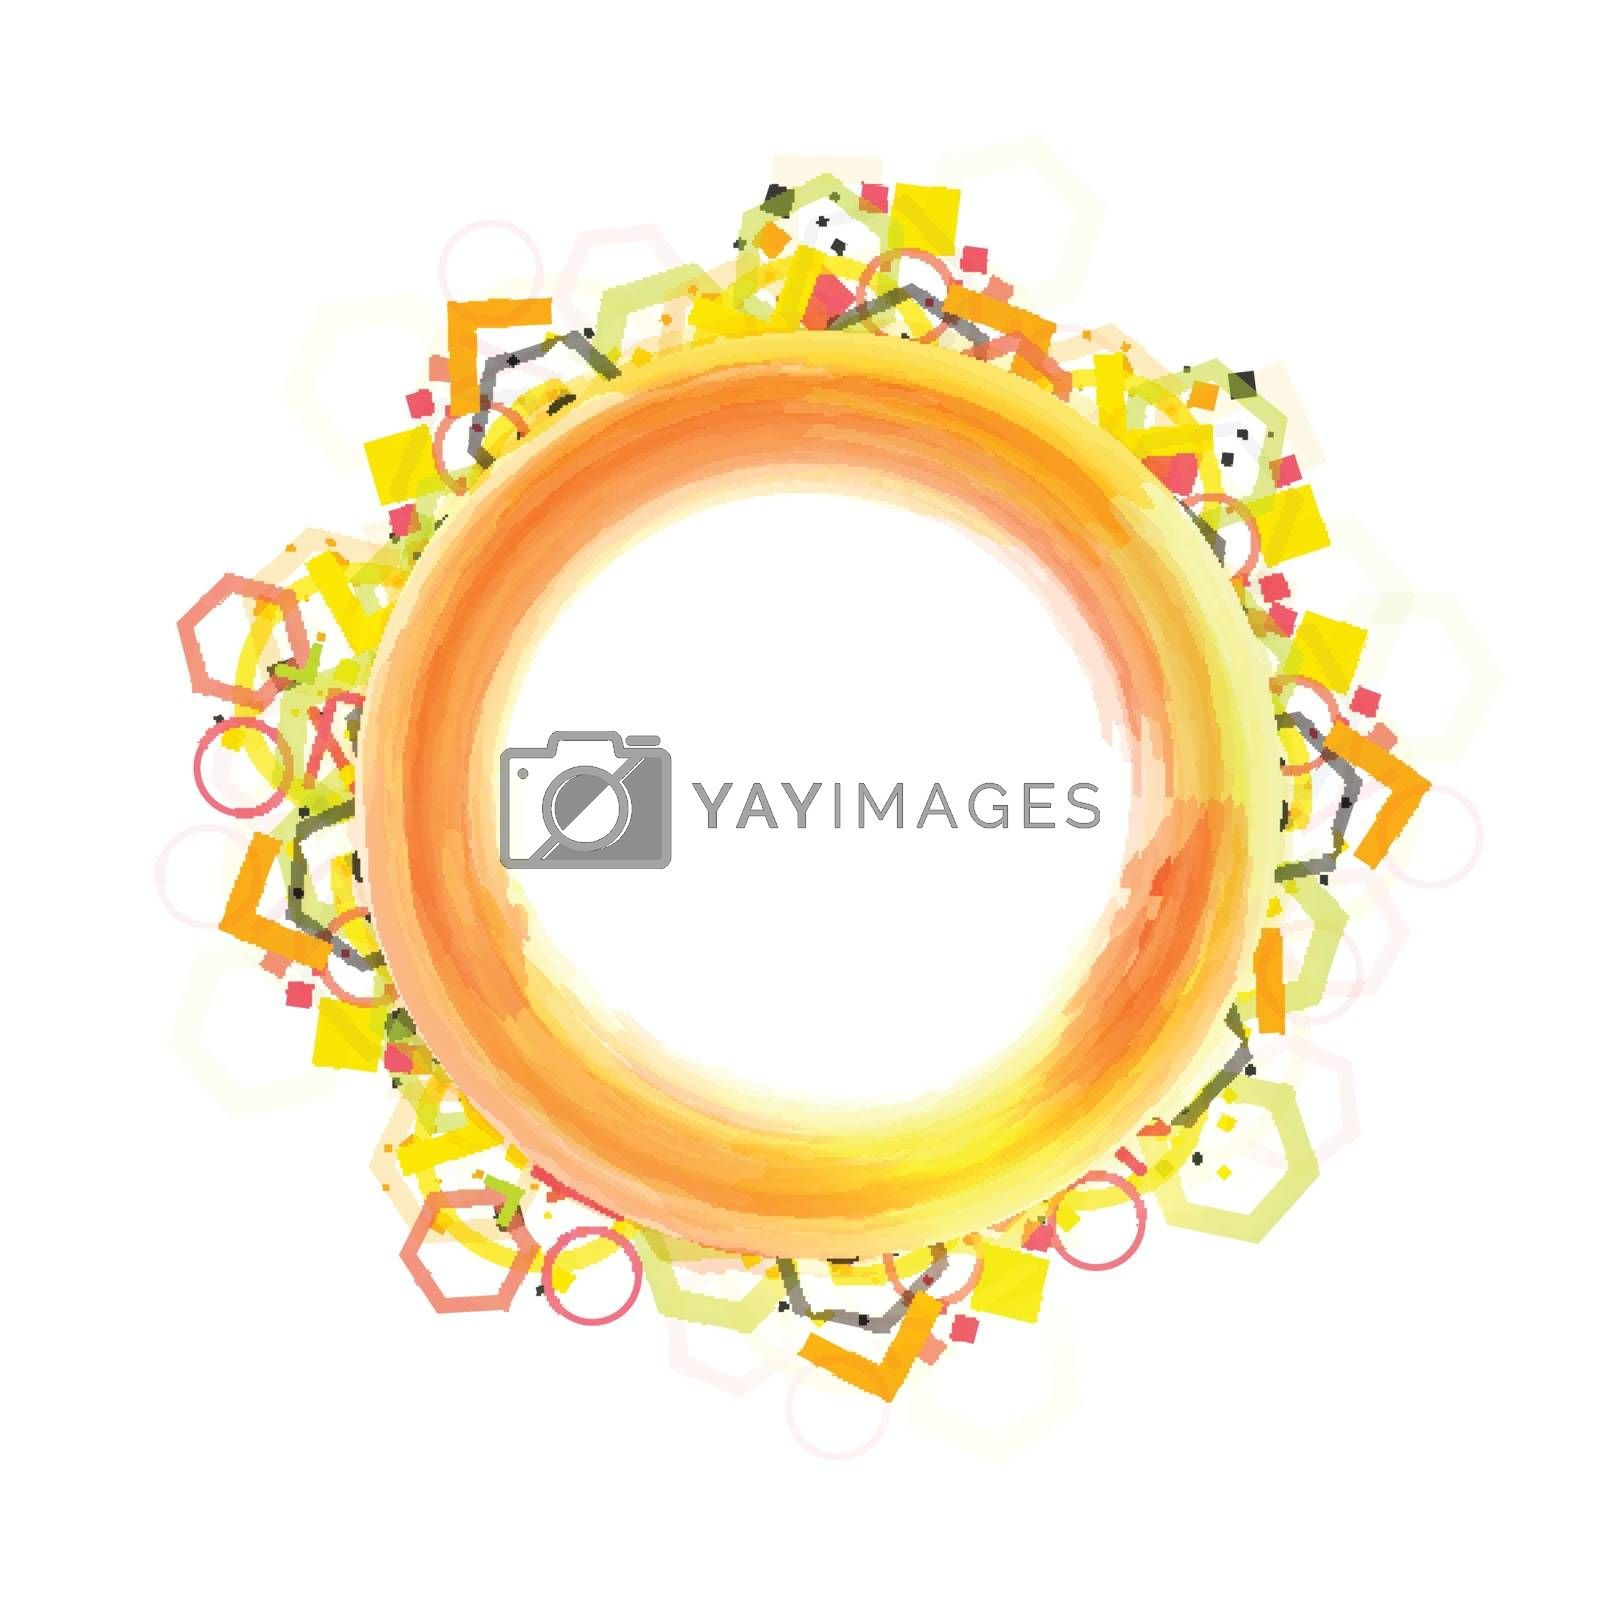 Colorful circular frame on white background.